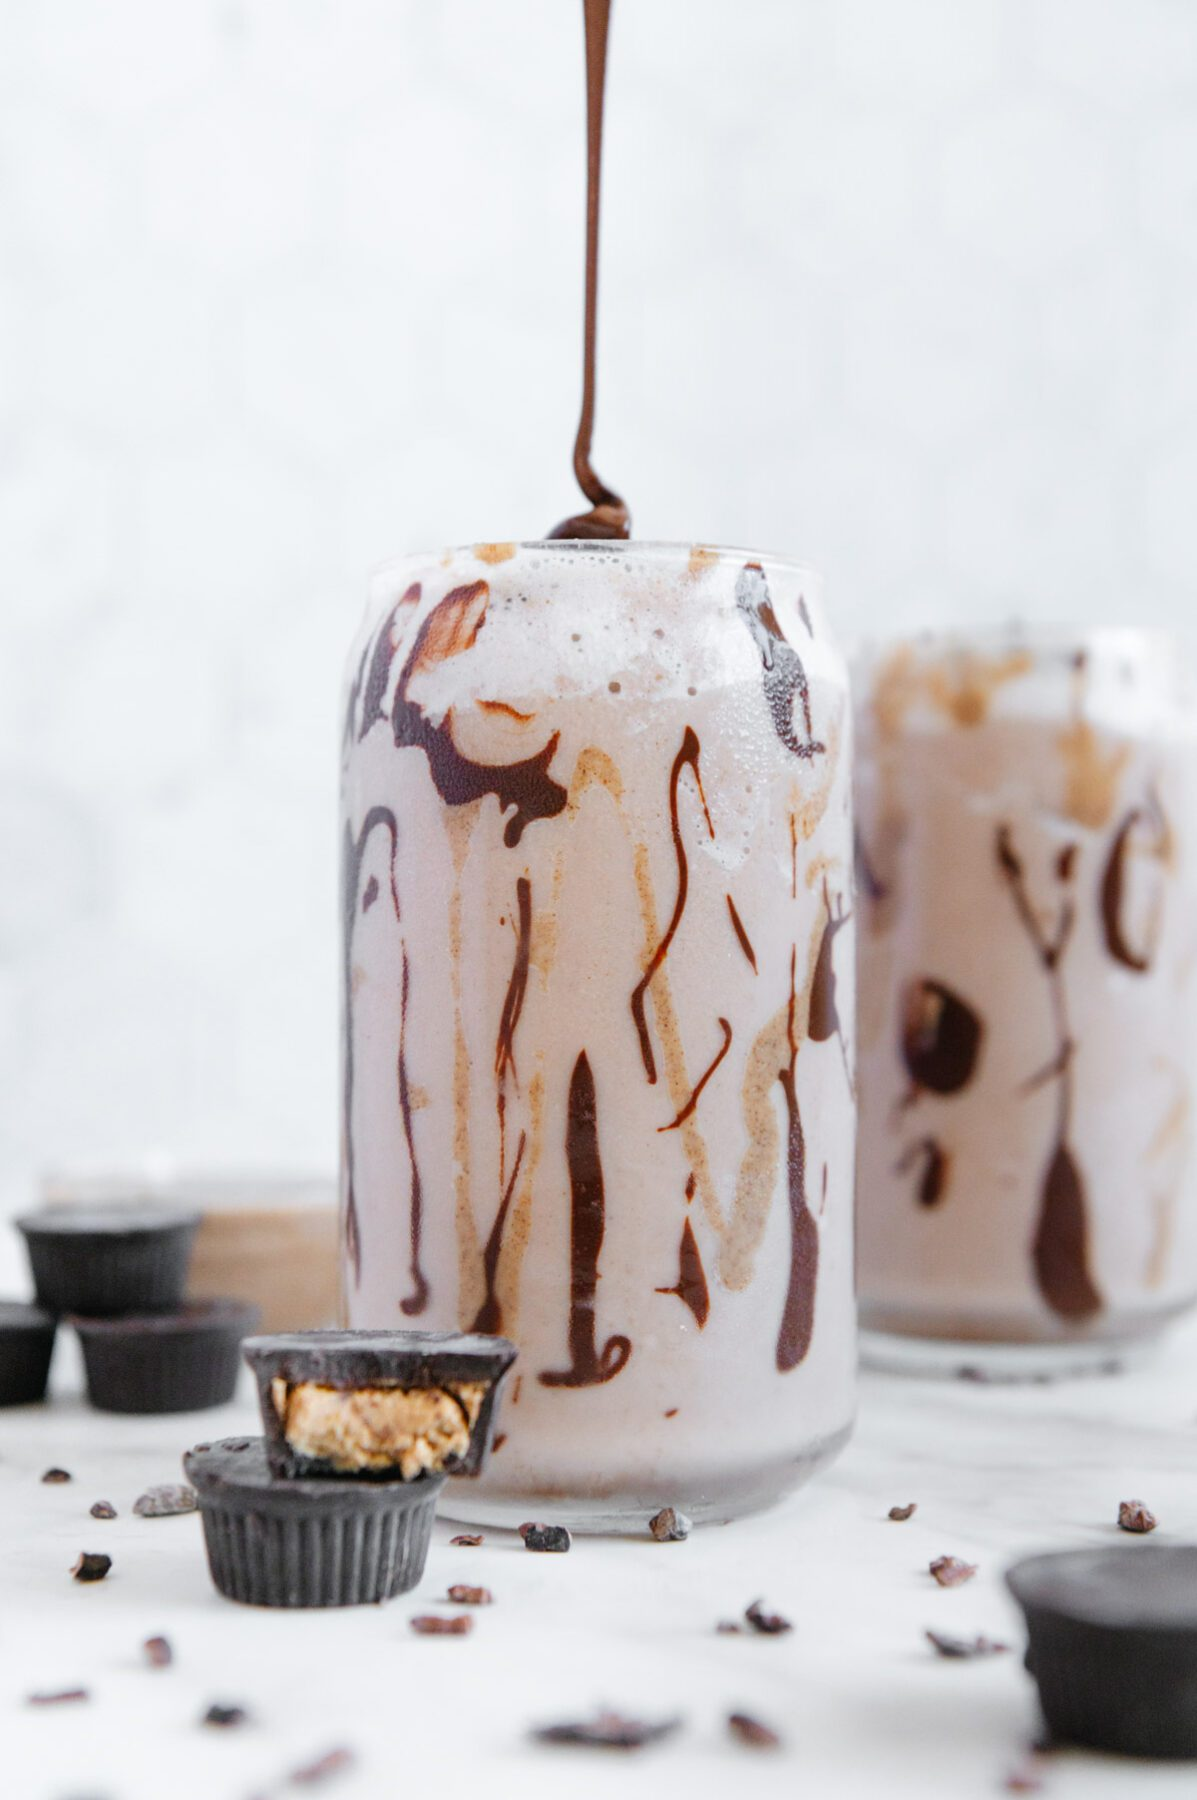 Chocolate and Almond Butter Vegan Smoothie